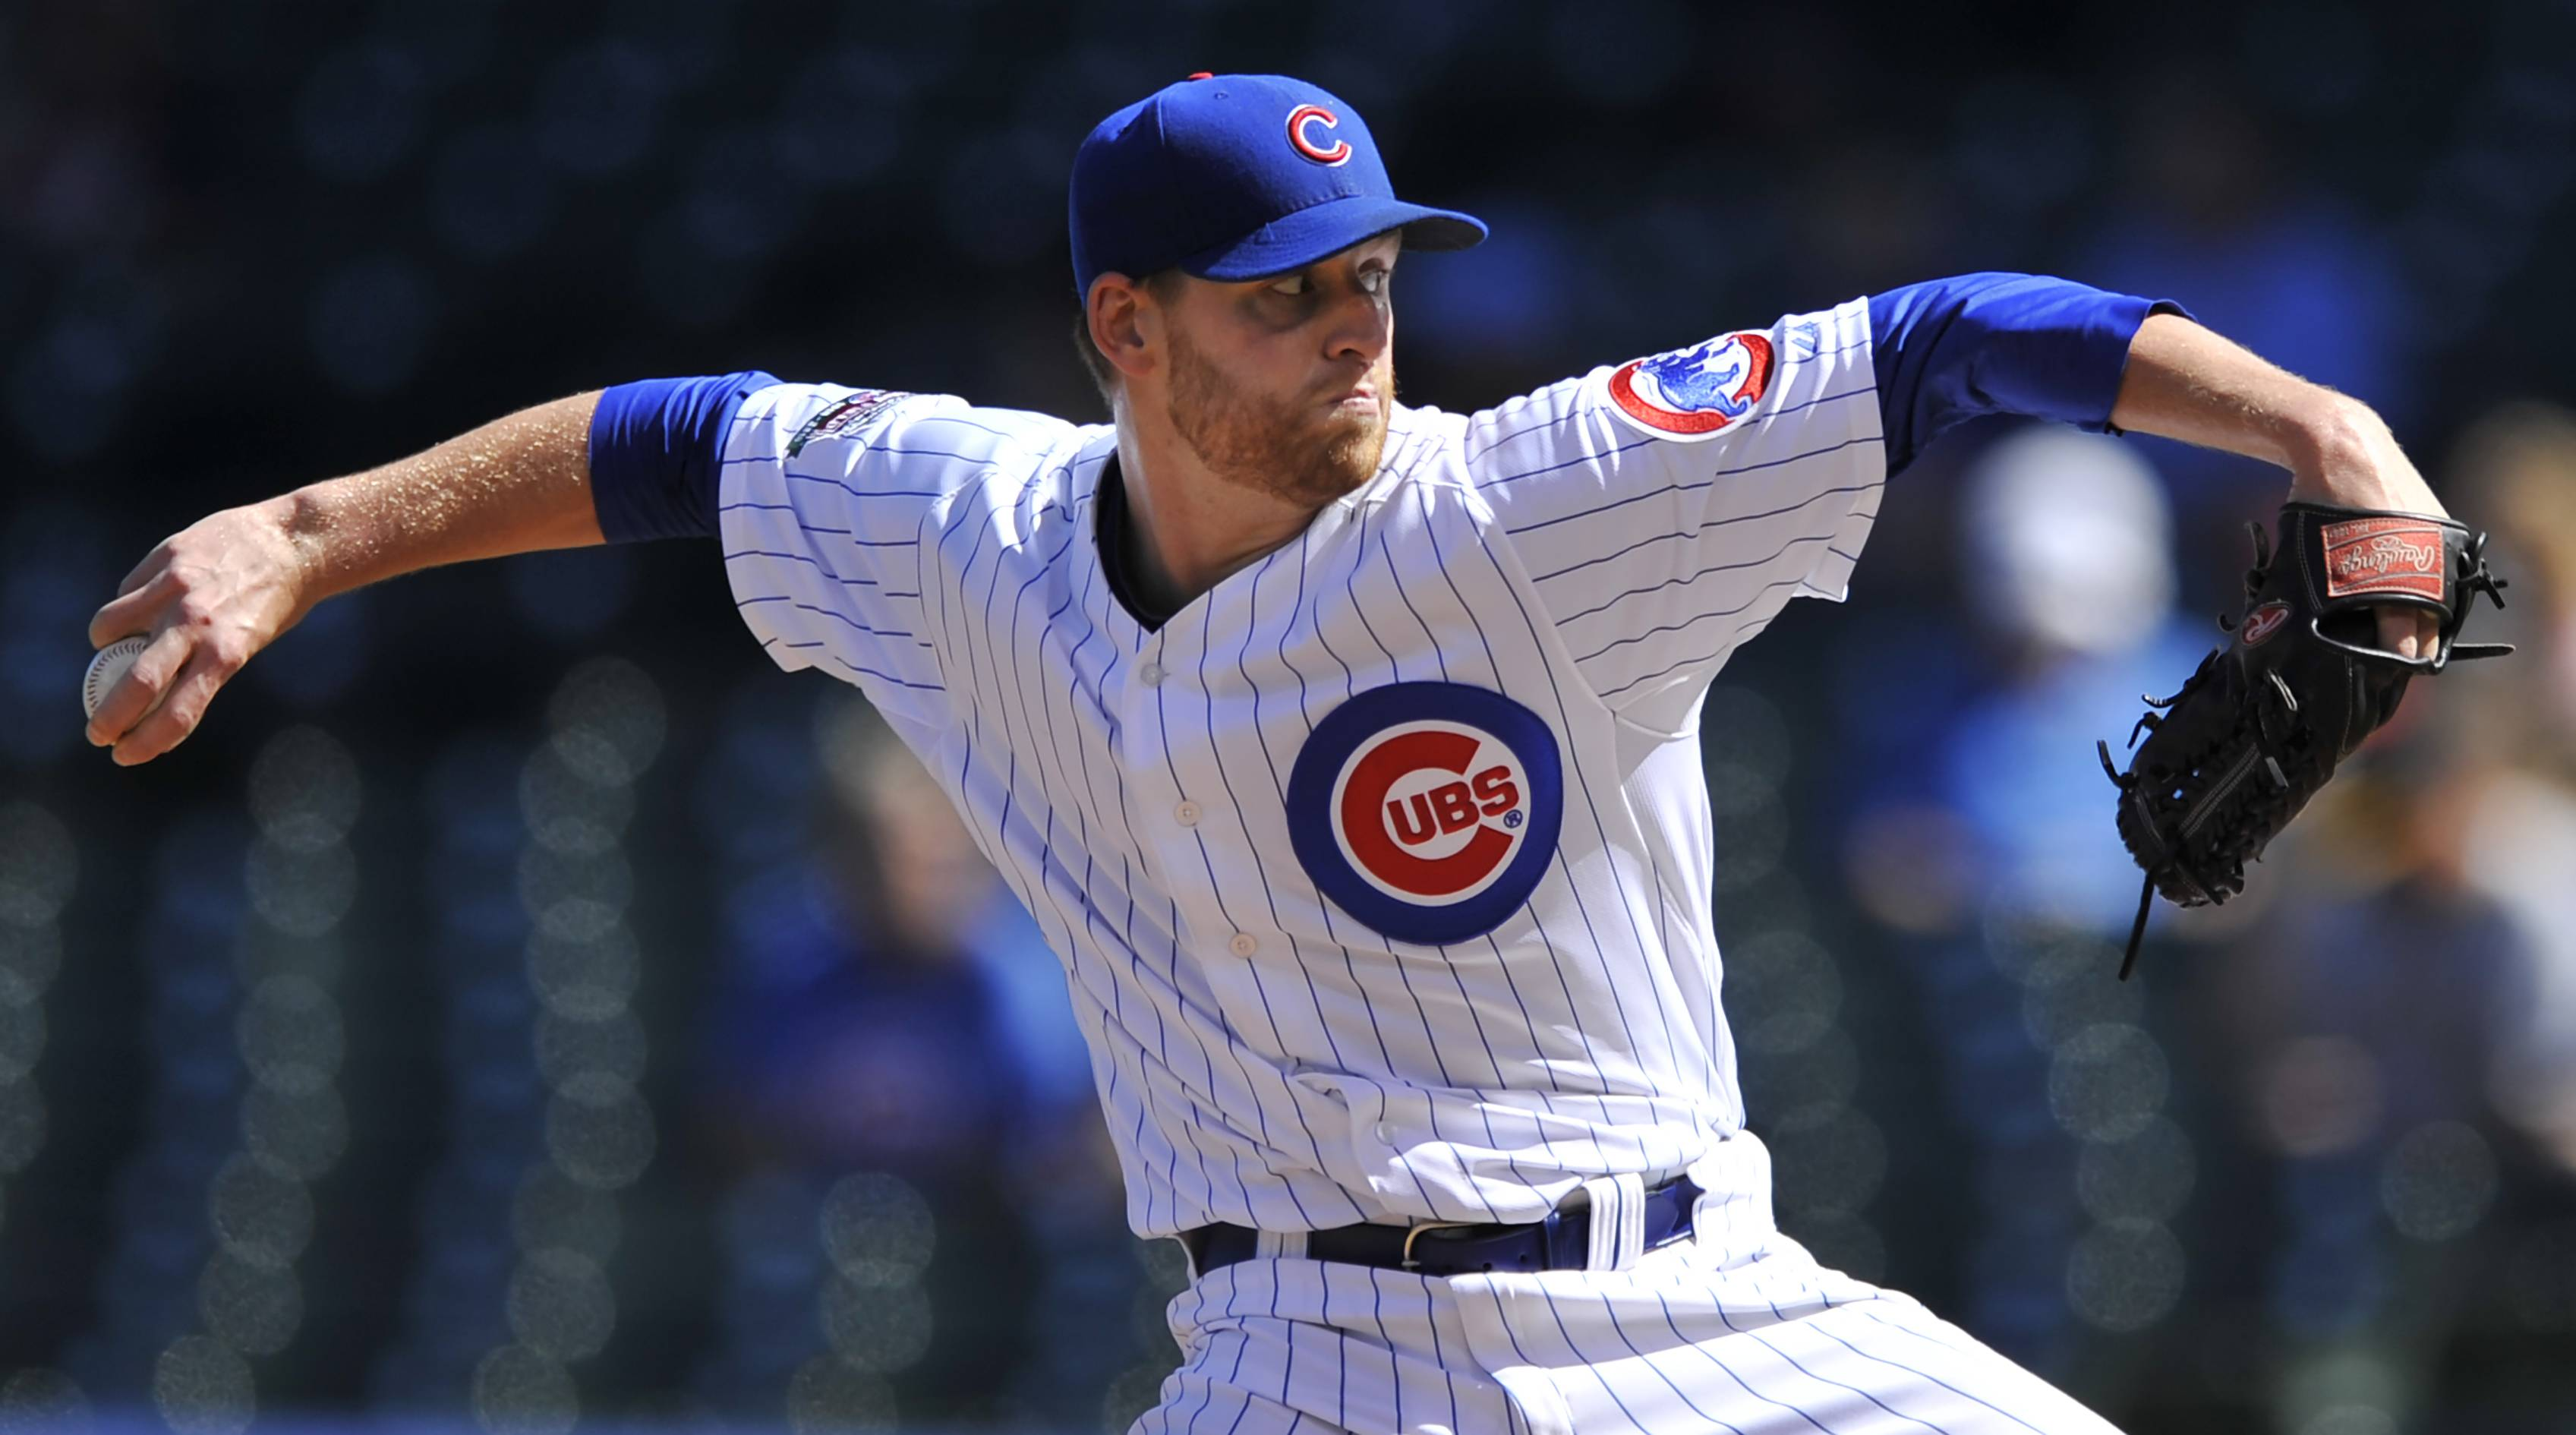 Chicago Cubs relief pitcher Neil Ramirez delivers during the seventh inning of a baseball game against the Pittsburgh Pirates continued from Friday's rain delay in Chicago, Saturday, Sept. 6, 2014. (AP Photo/Paul Beaty)